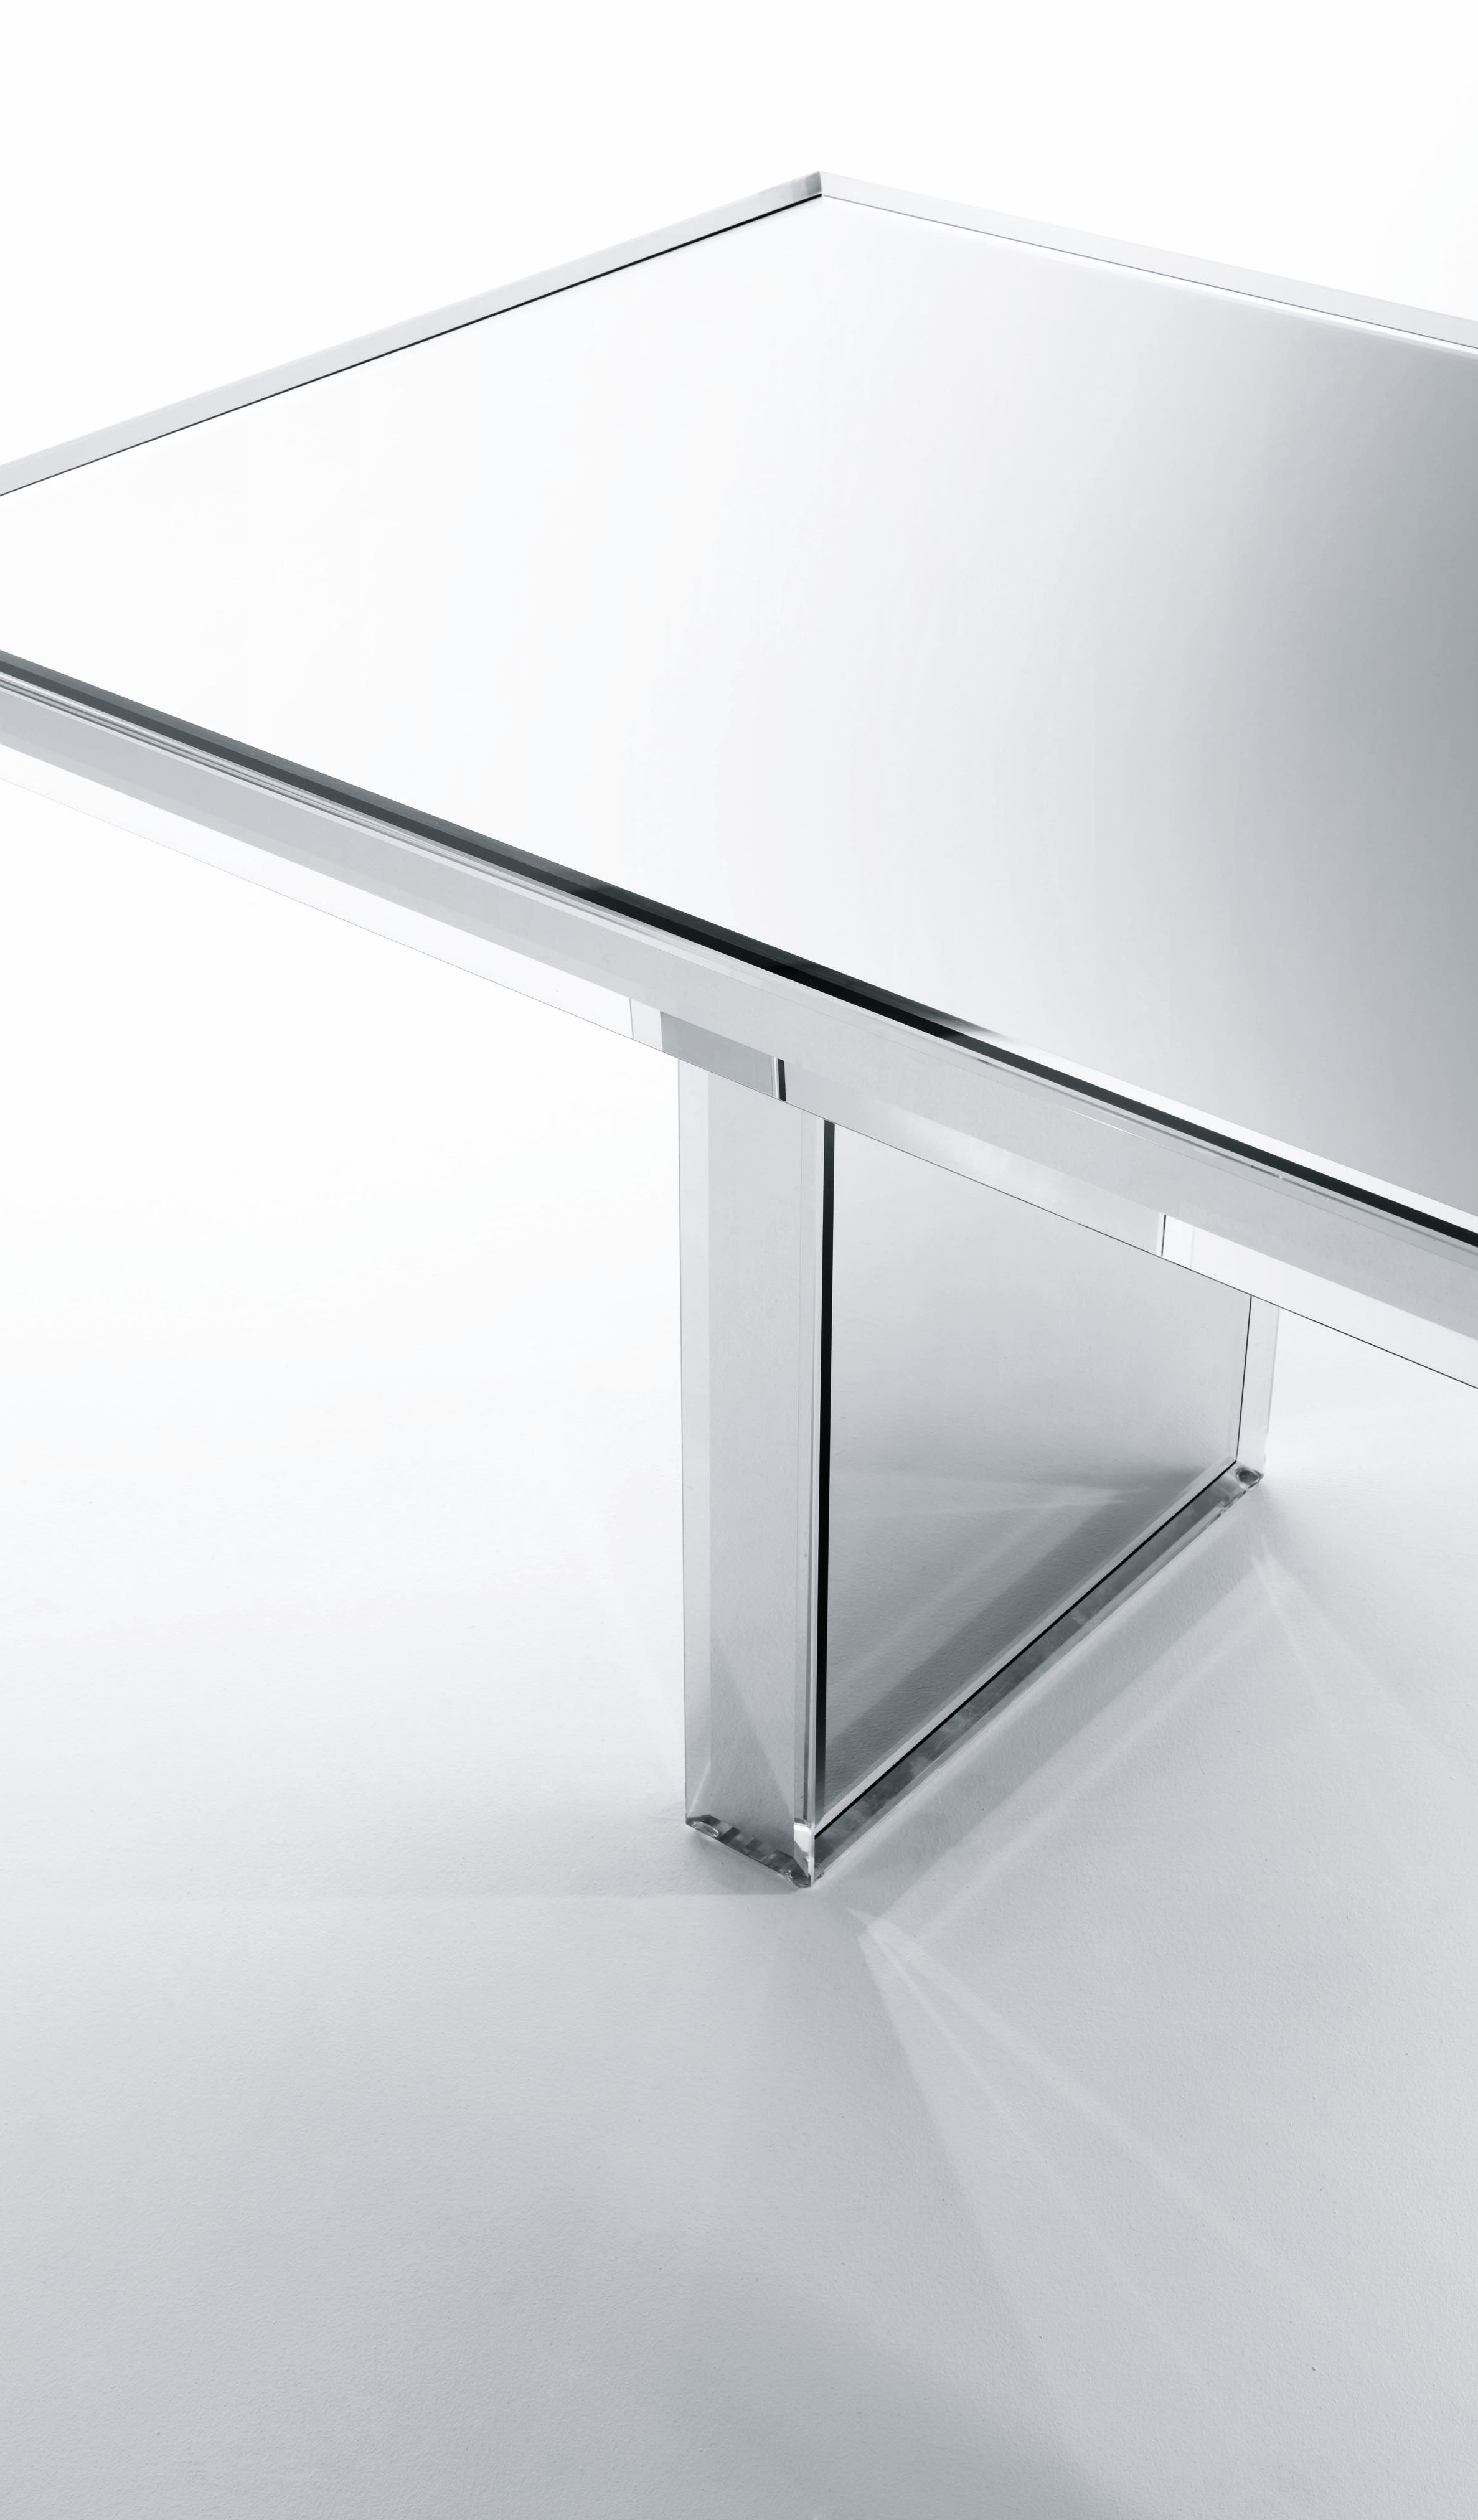 glass dining table, dining tables and glasses on pinterest, Möbel